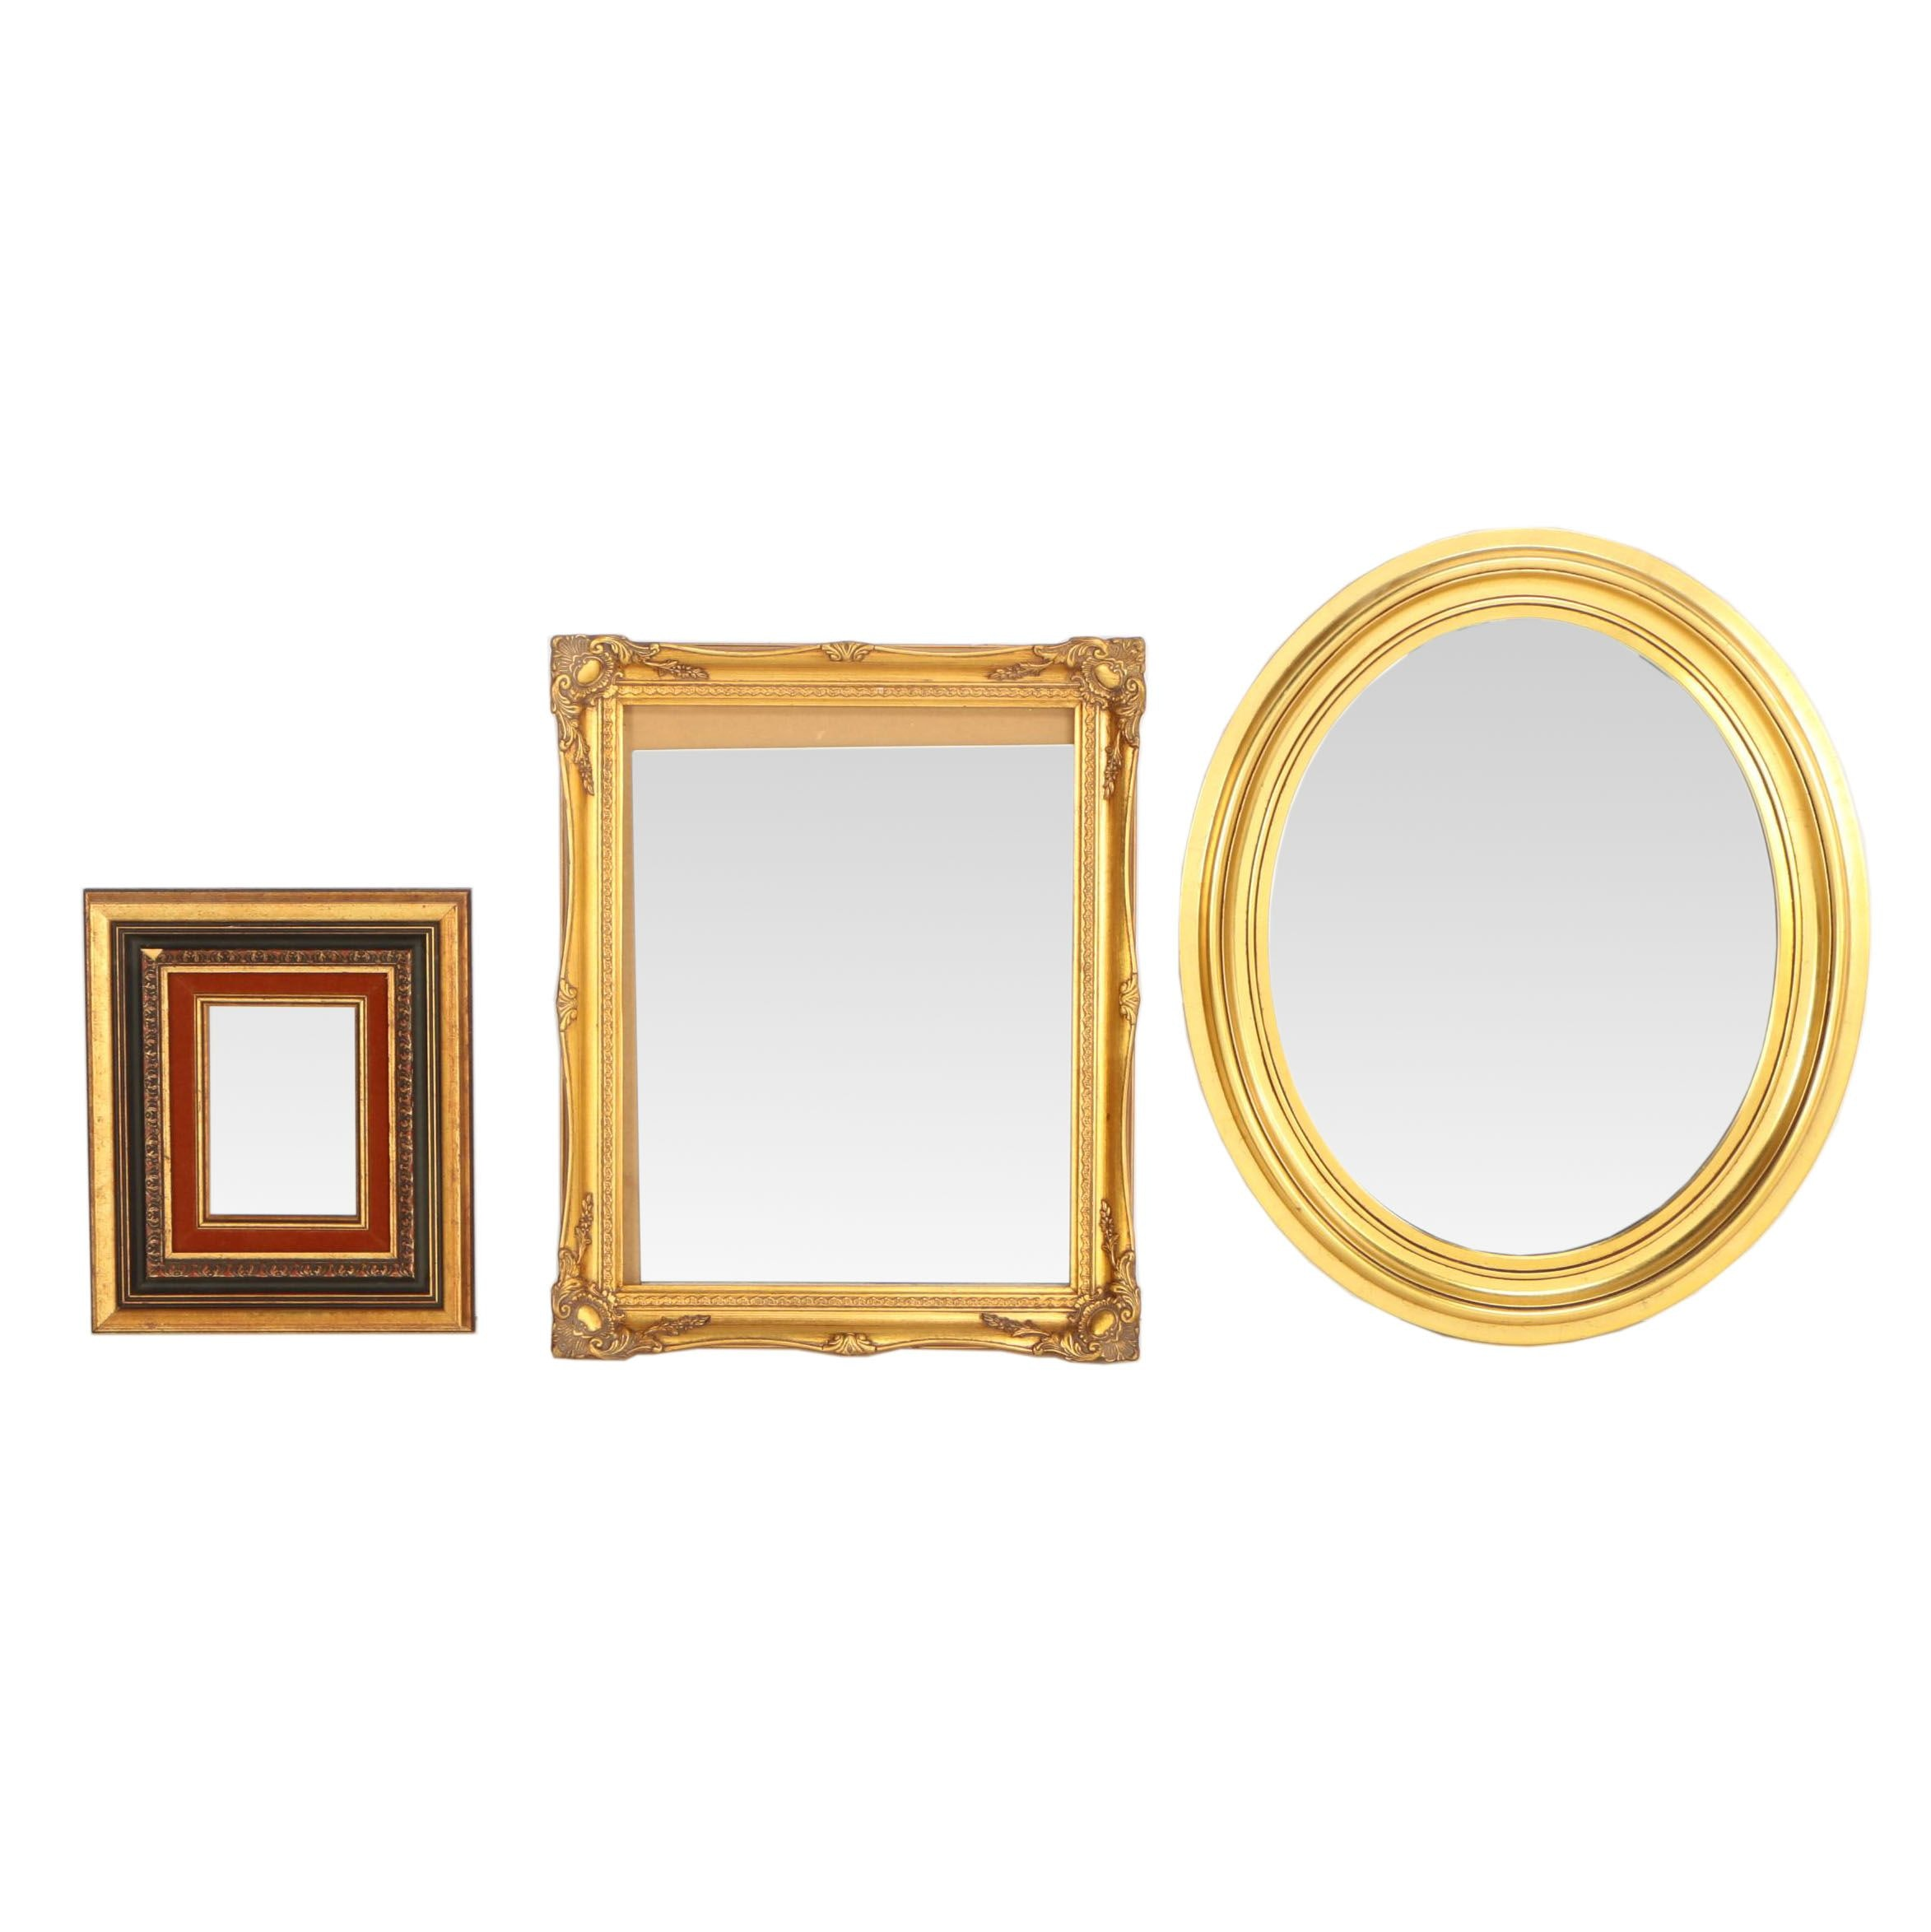 Tell City Chair Company Giltwood Oval Mirror with Other Giltwood Mirrors